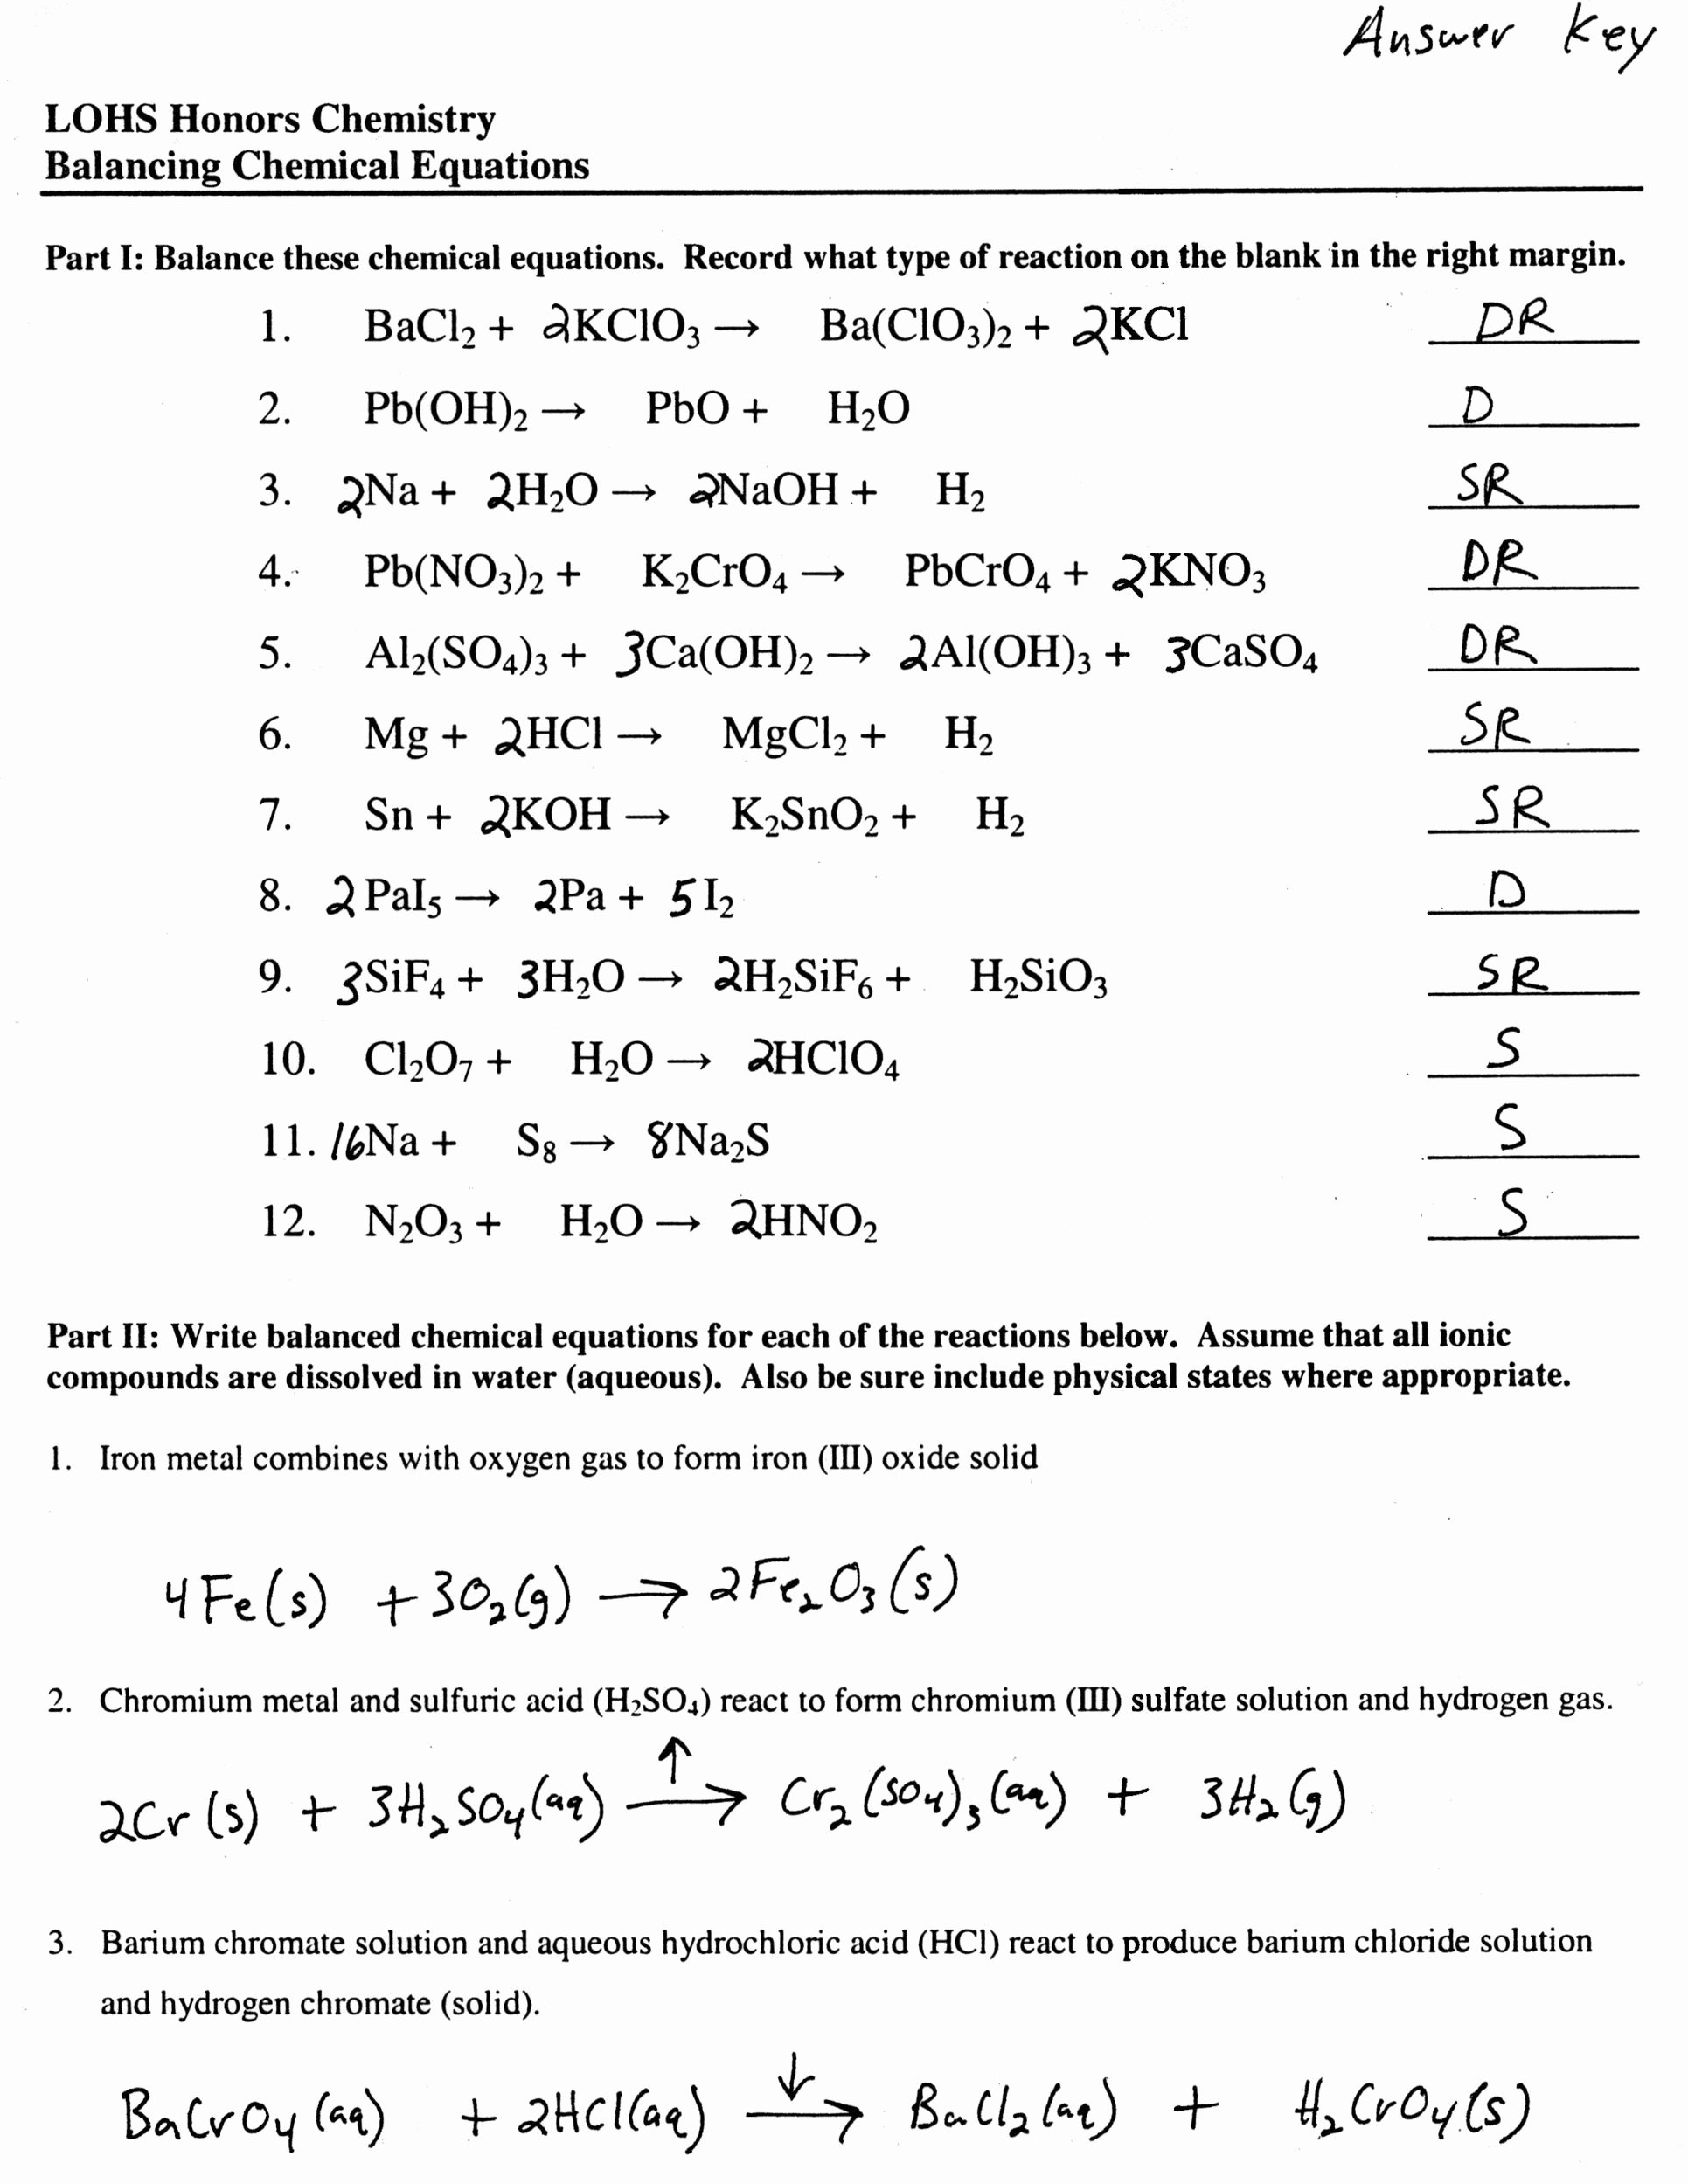 Nuclear Equations Worksheet Answers Elegant Balancing Nuclear Equations Worksheet